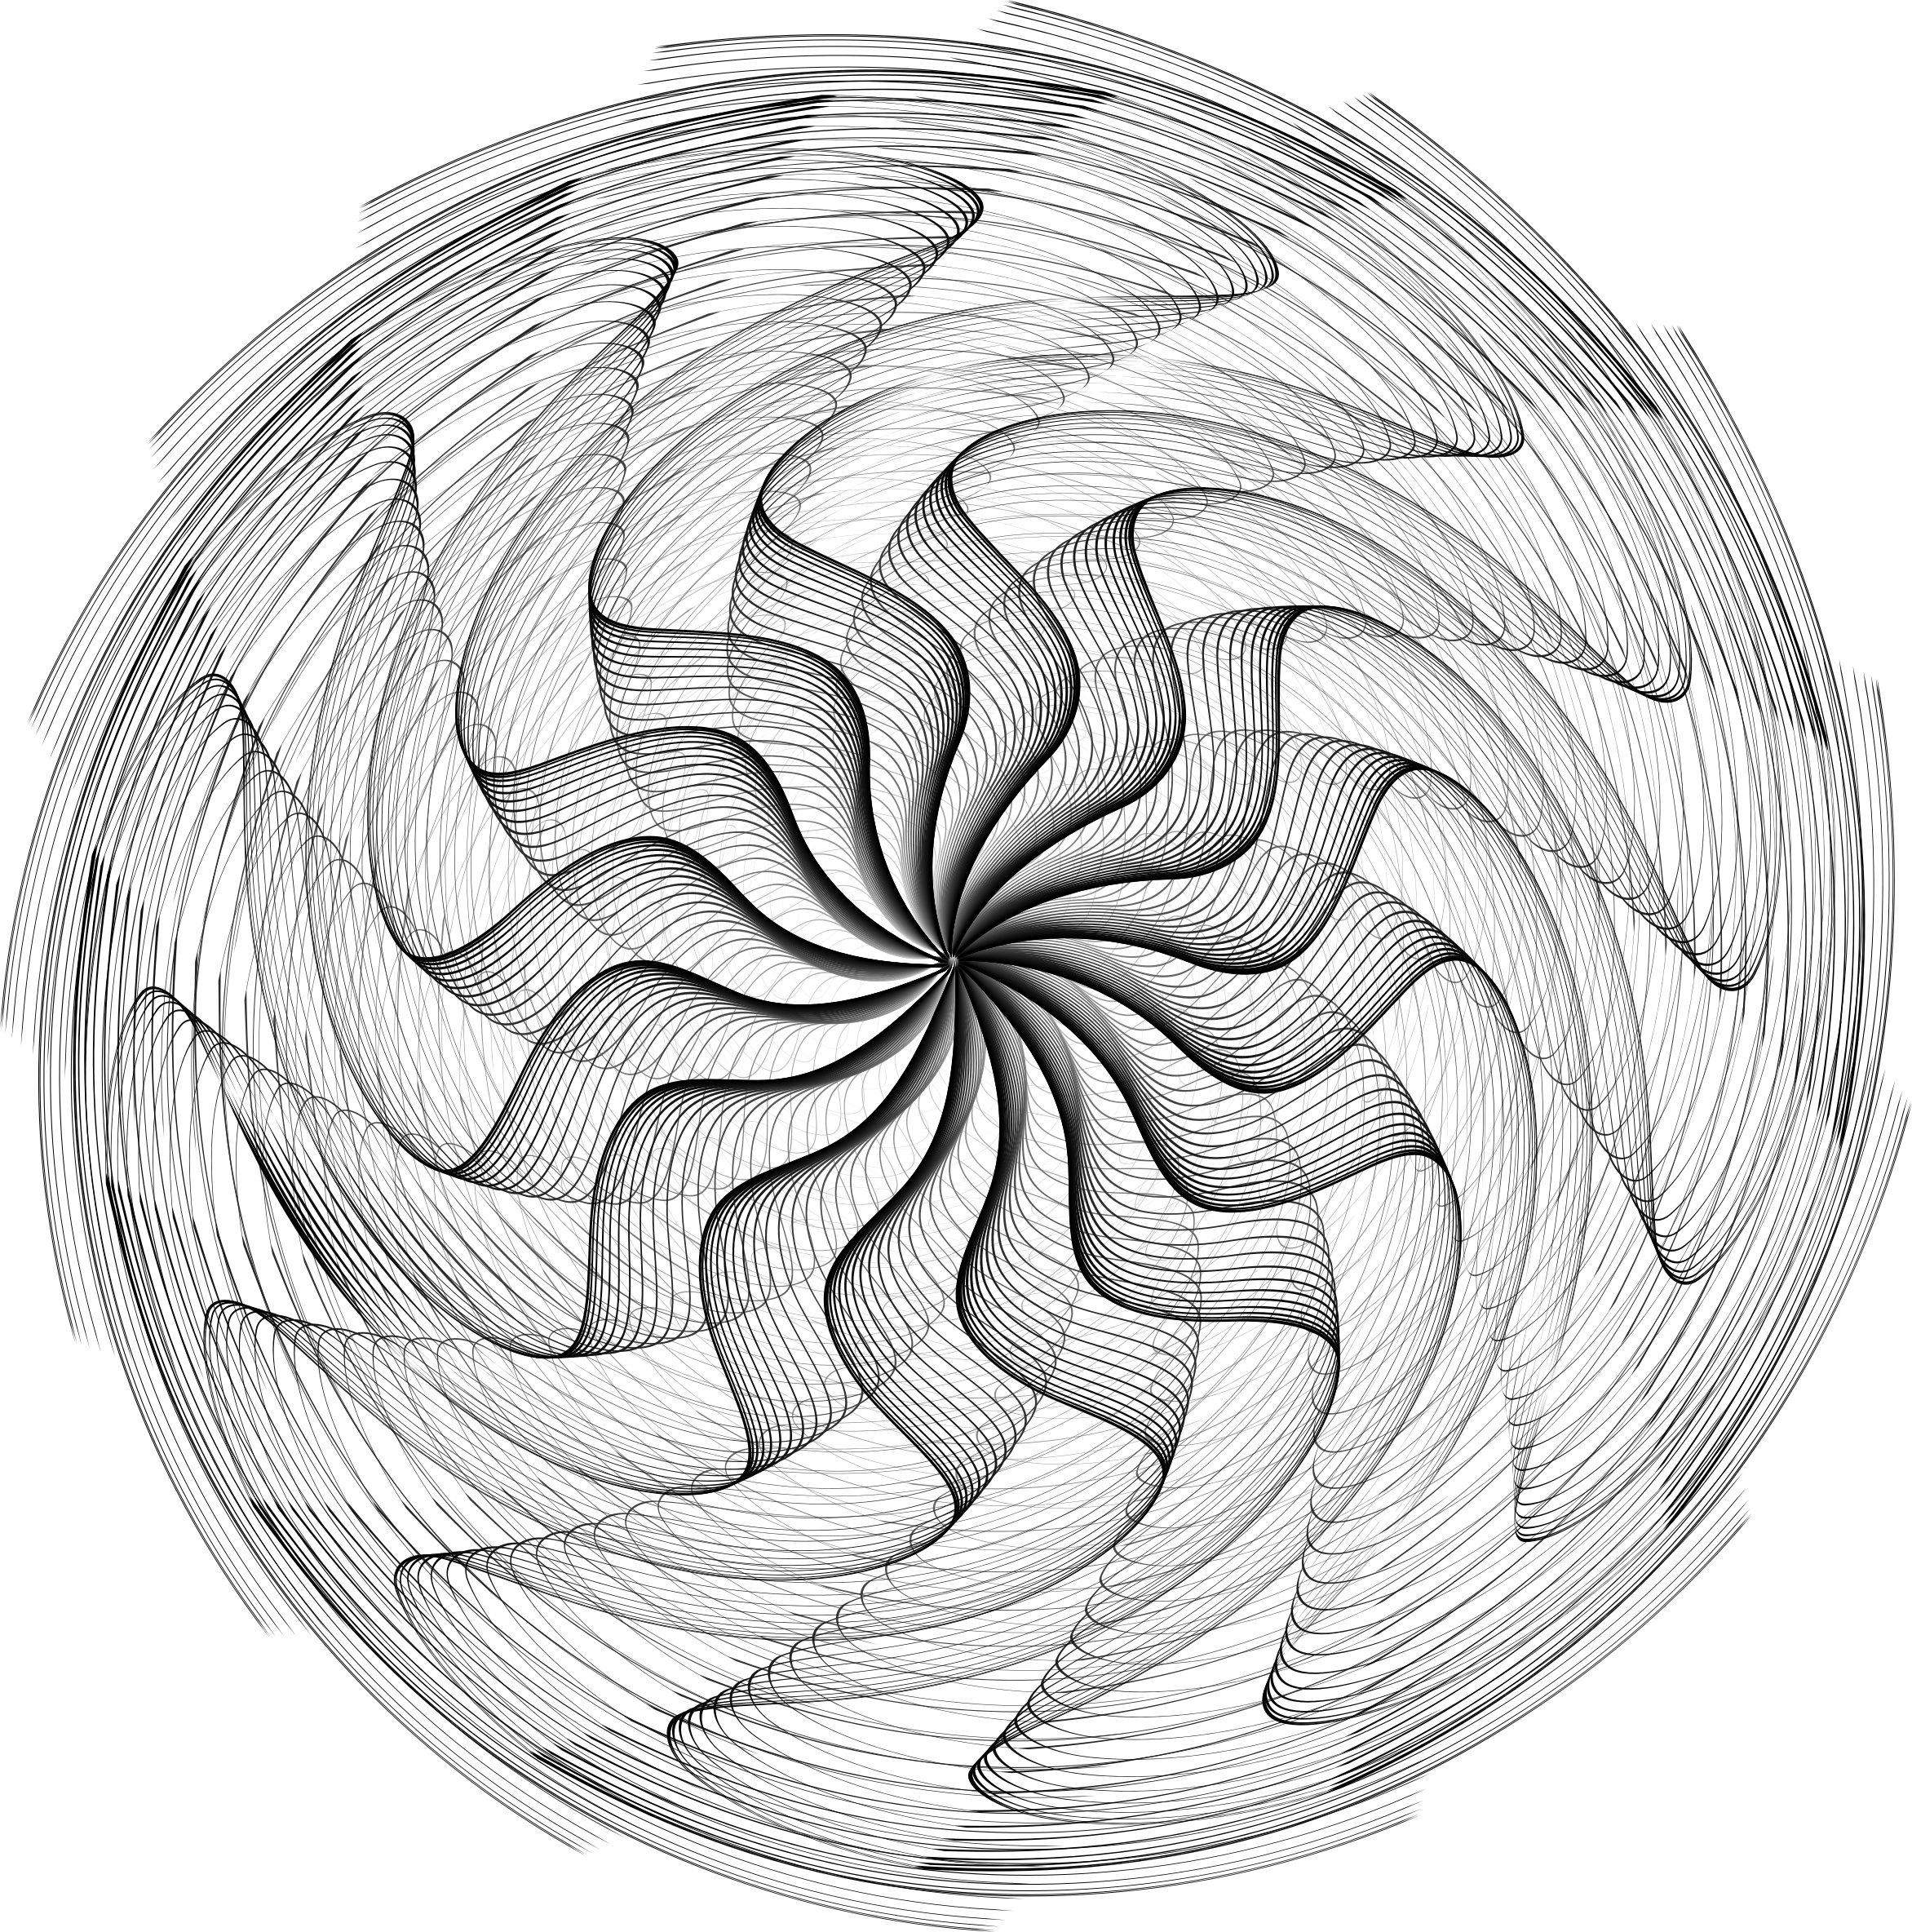 Wavy Vortex Line Art by GDJ